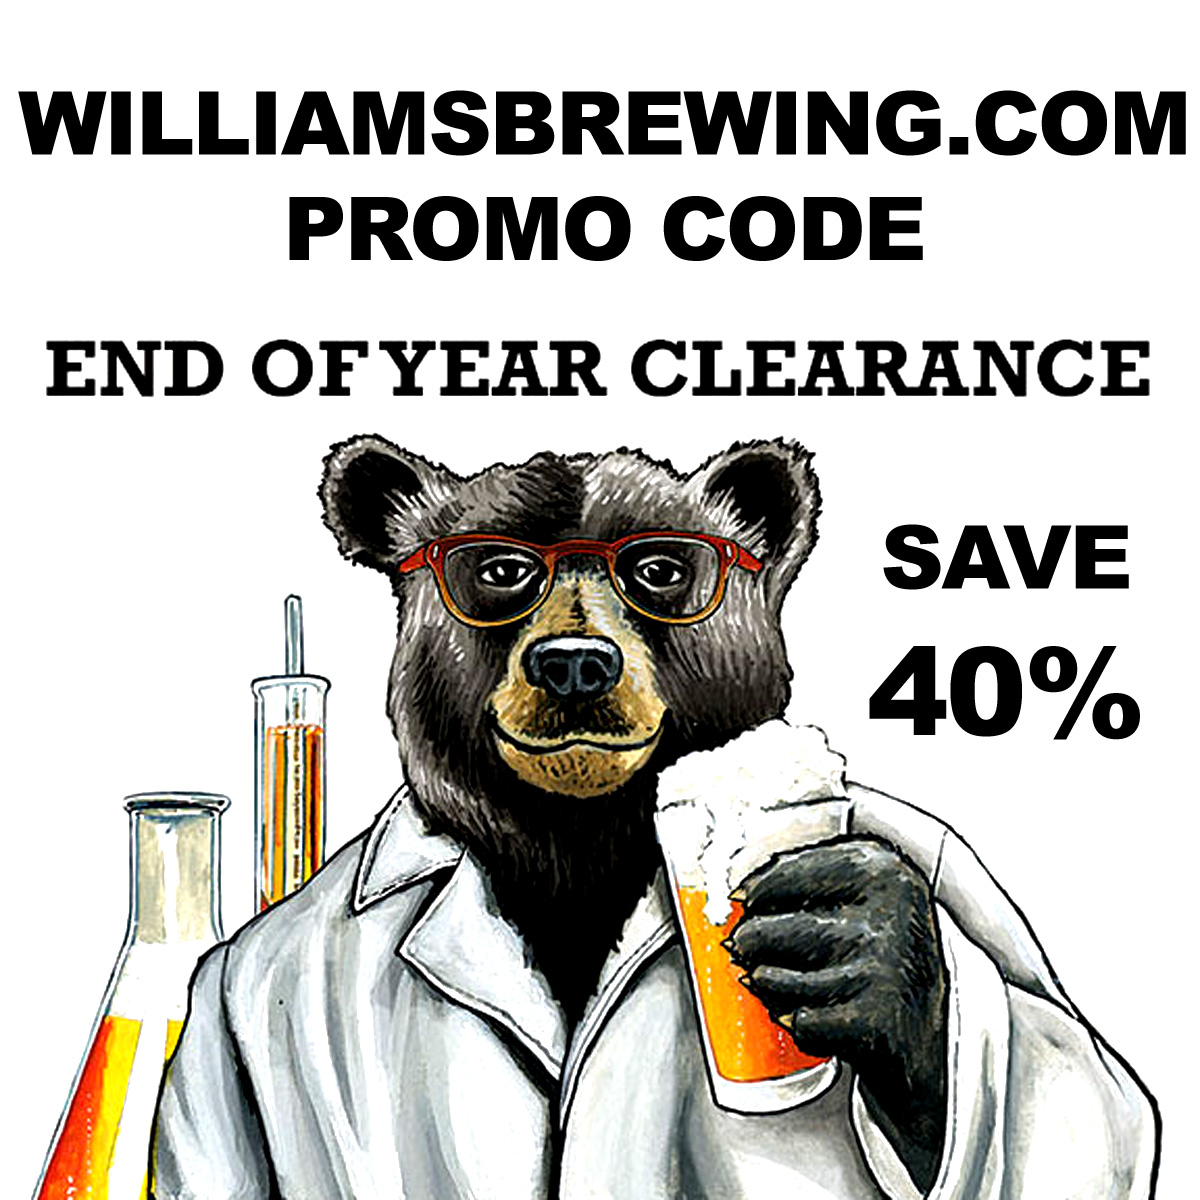 Williams Brewing Save 40% On Popular Home Brewing Items At The Williams Brewing Year End Clearance Sale Coupon Code